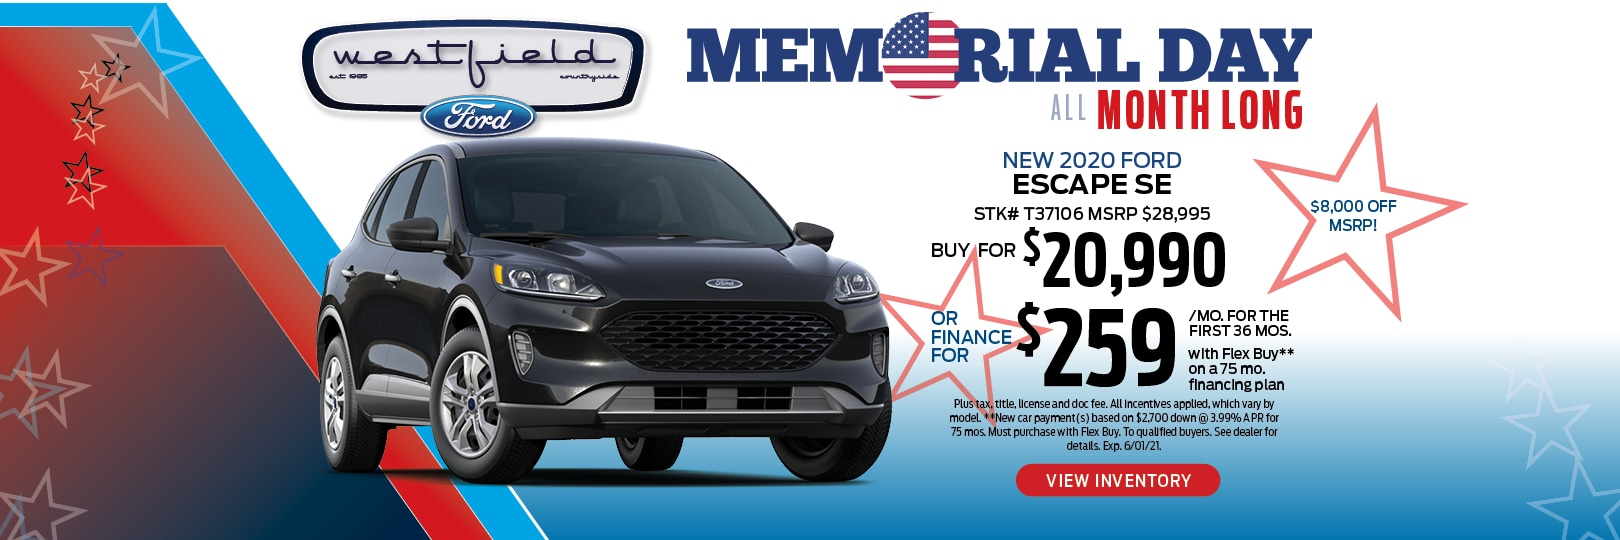 2020 Ford Escape Buy Offer | Countryside, IL